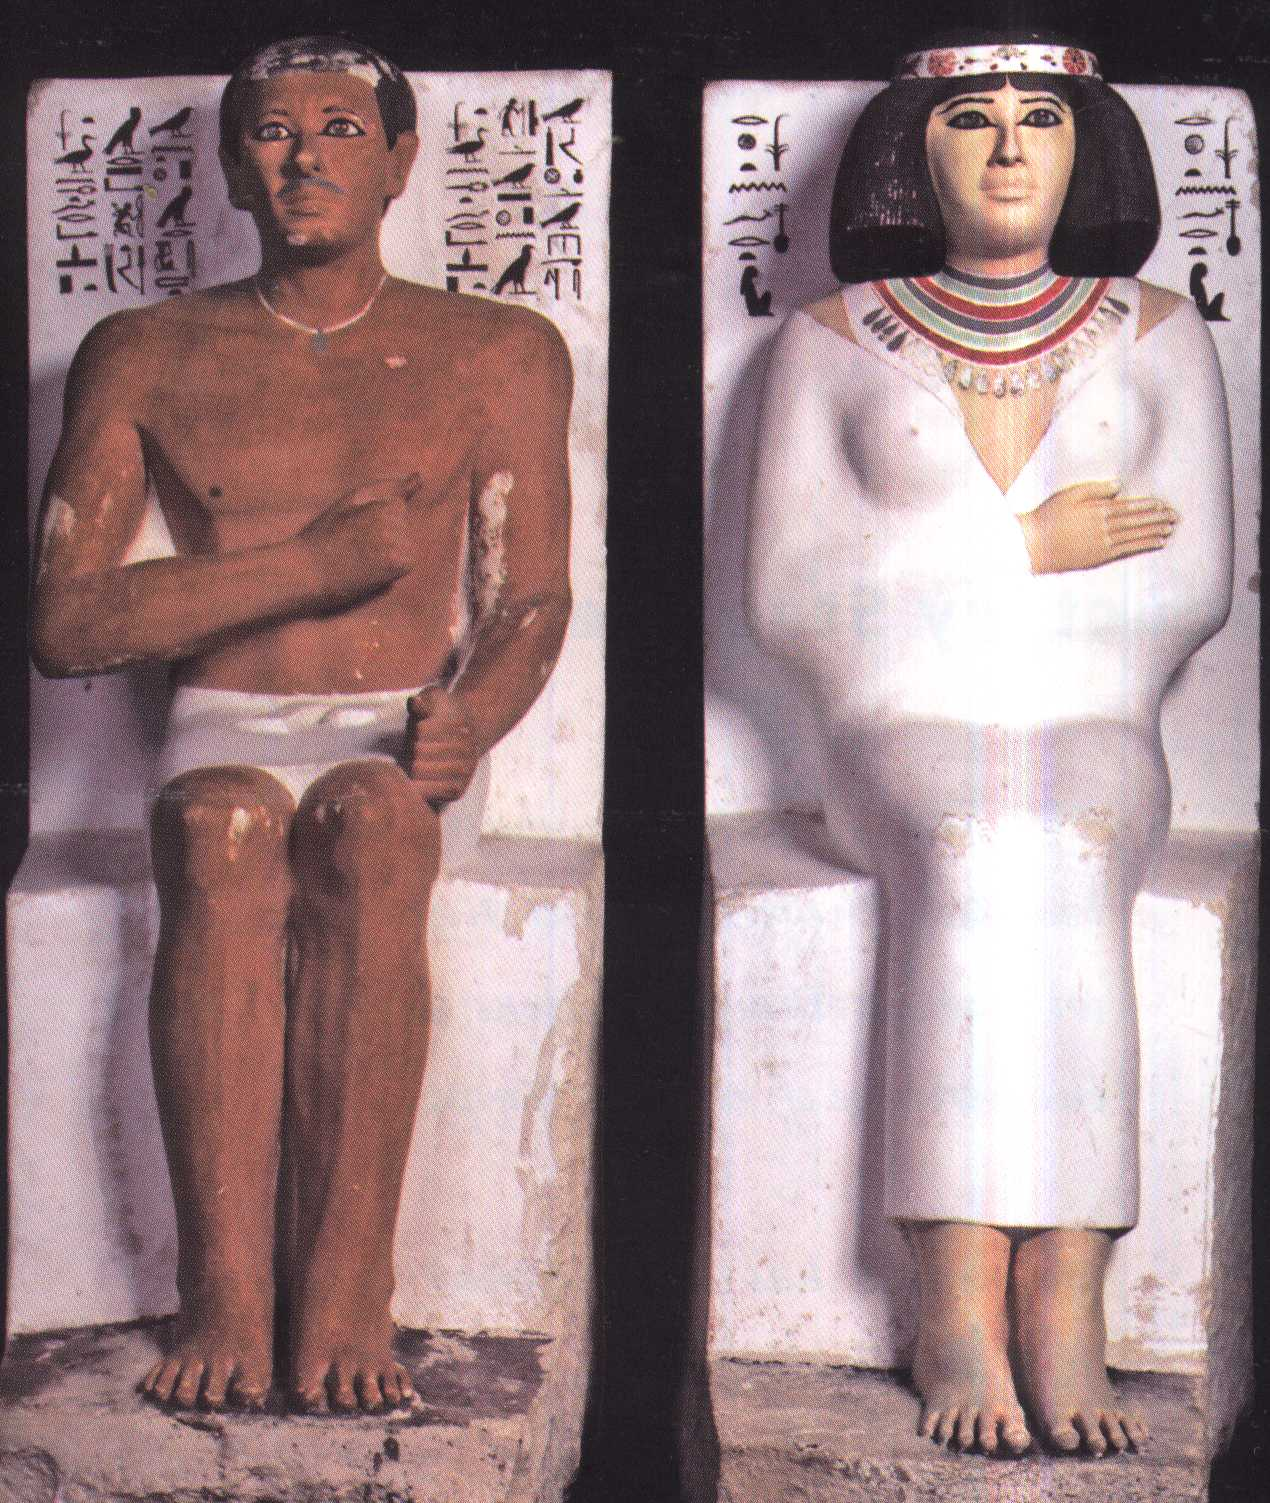 an essay on the appreciation of the statues of rahotep and nefert Please visit for assessment essay communication preparation a comparison of the statues of rahotep and nefert summative assessment.